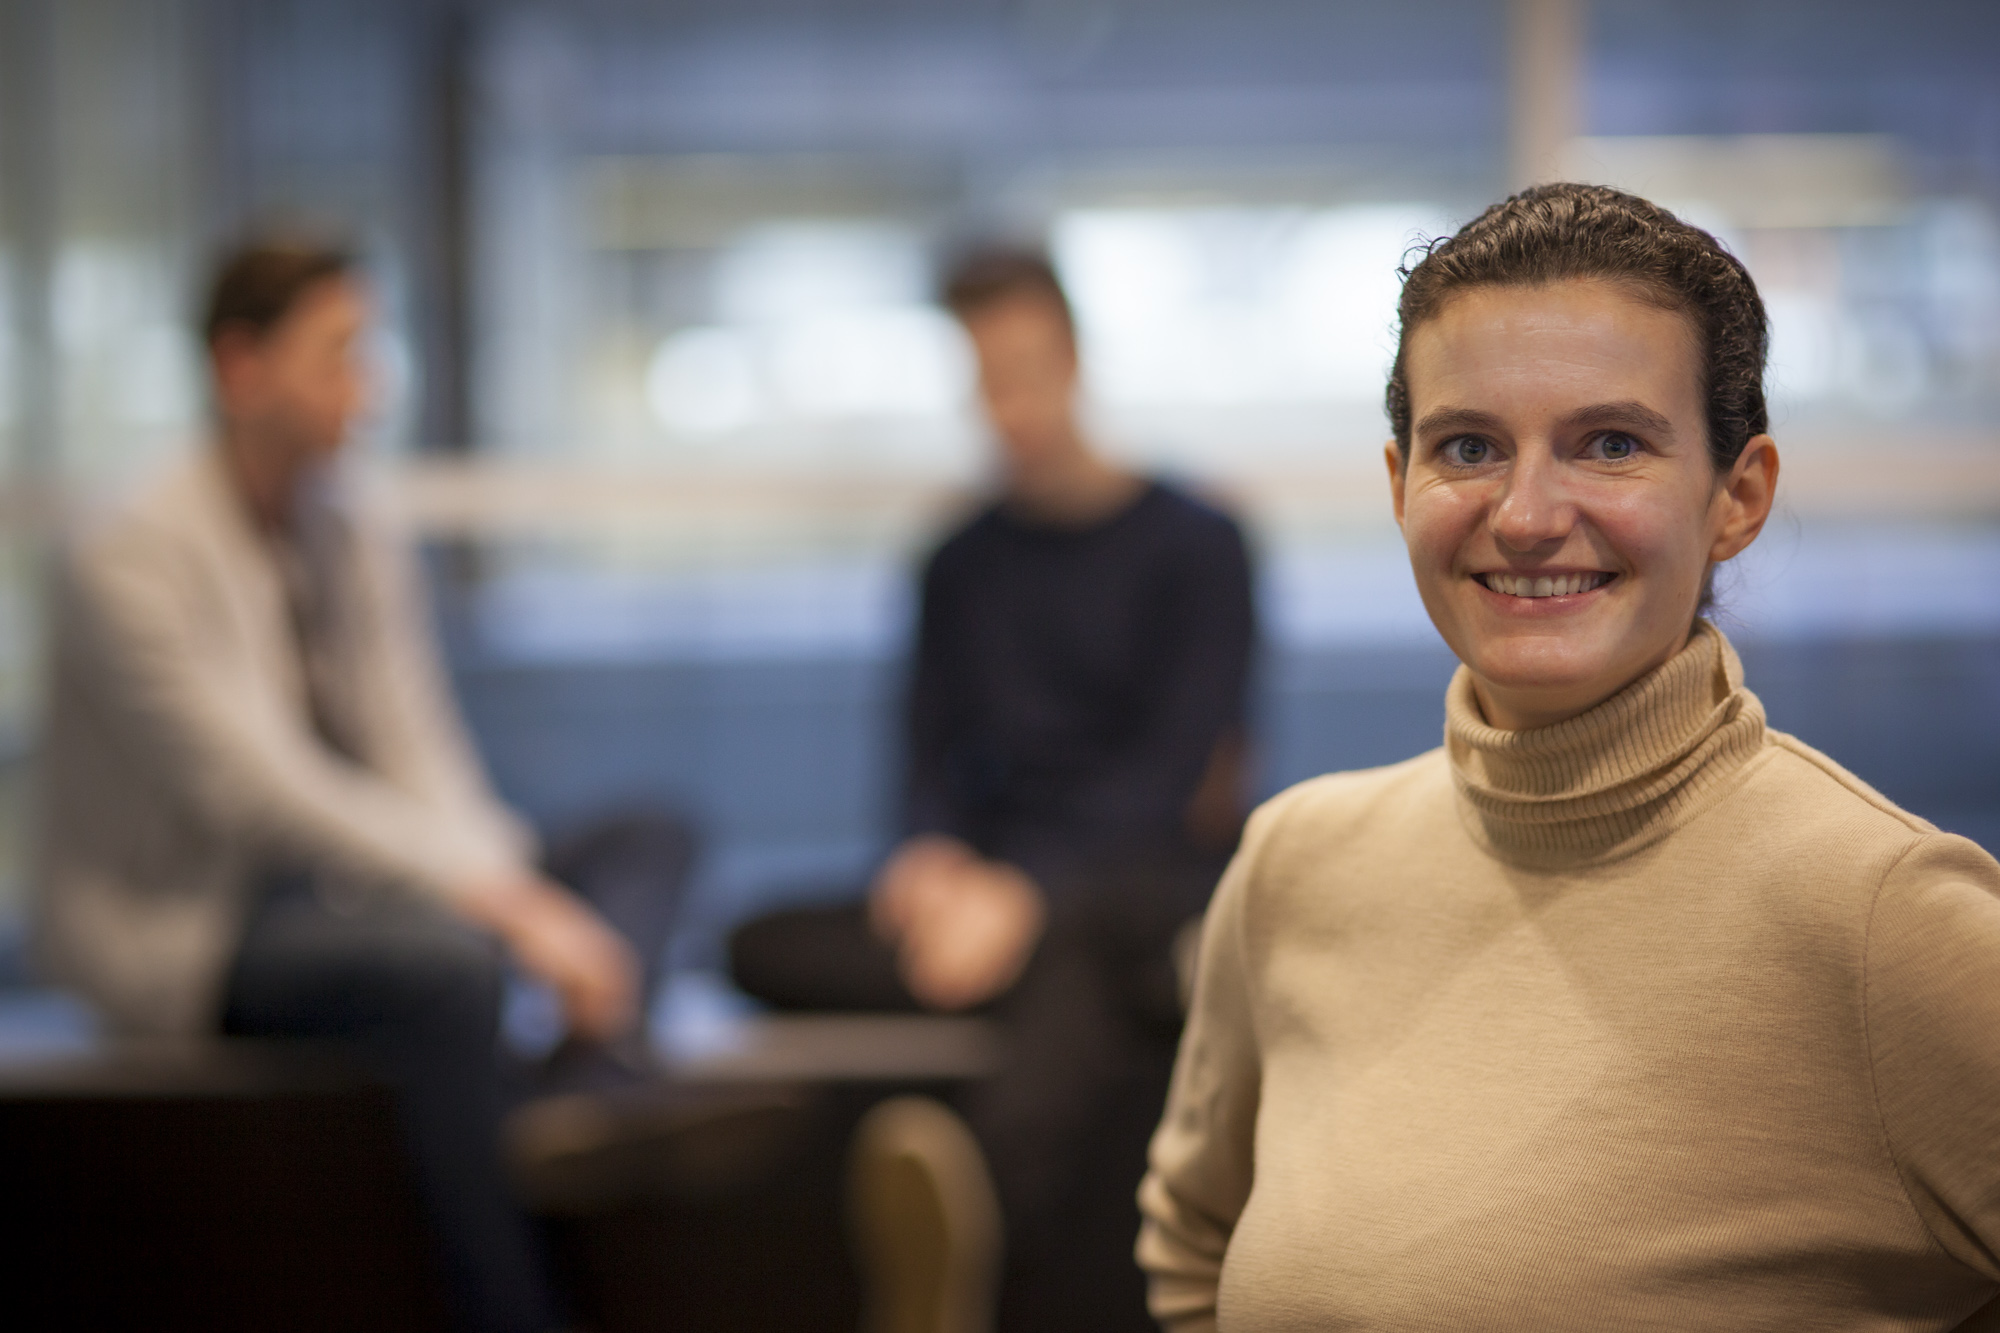 Isabelle Valette is data scientist in the Norwegian media house VG